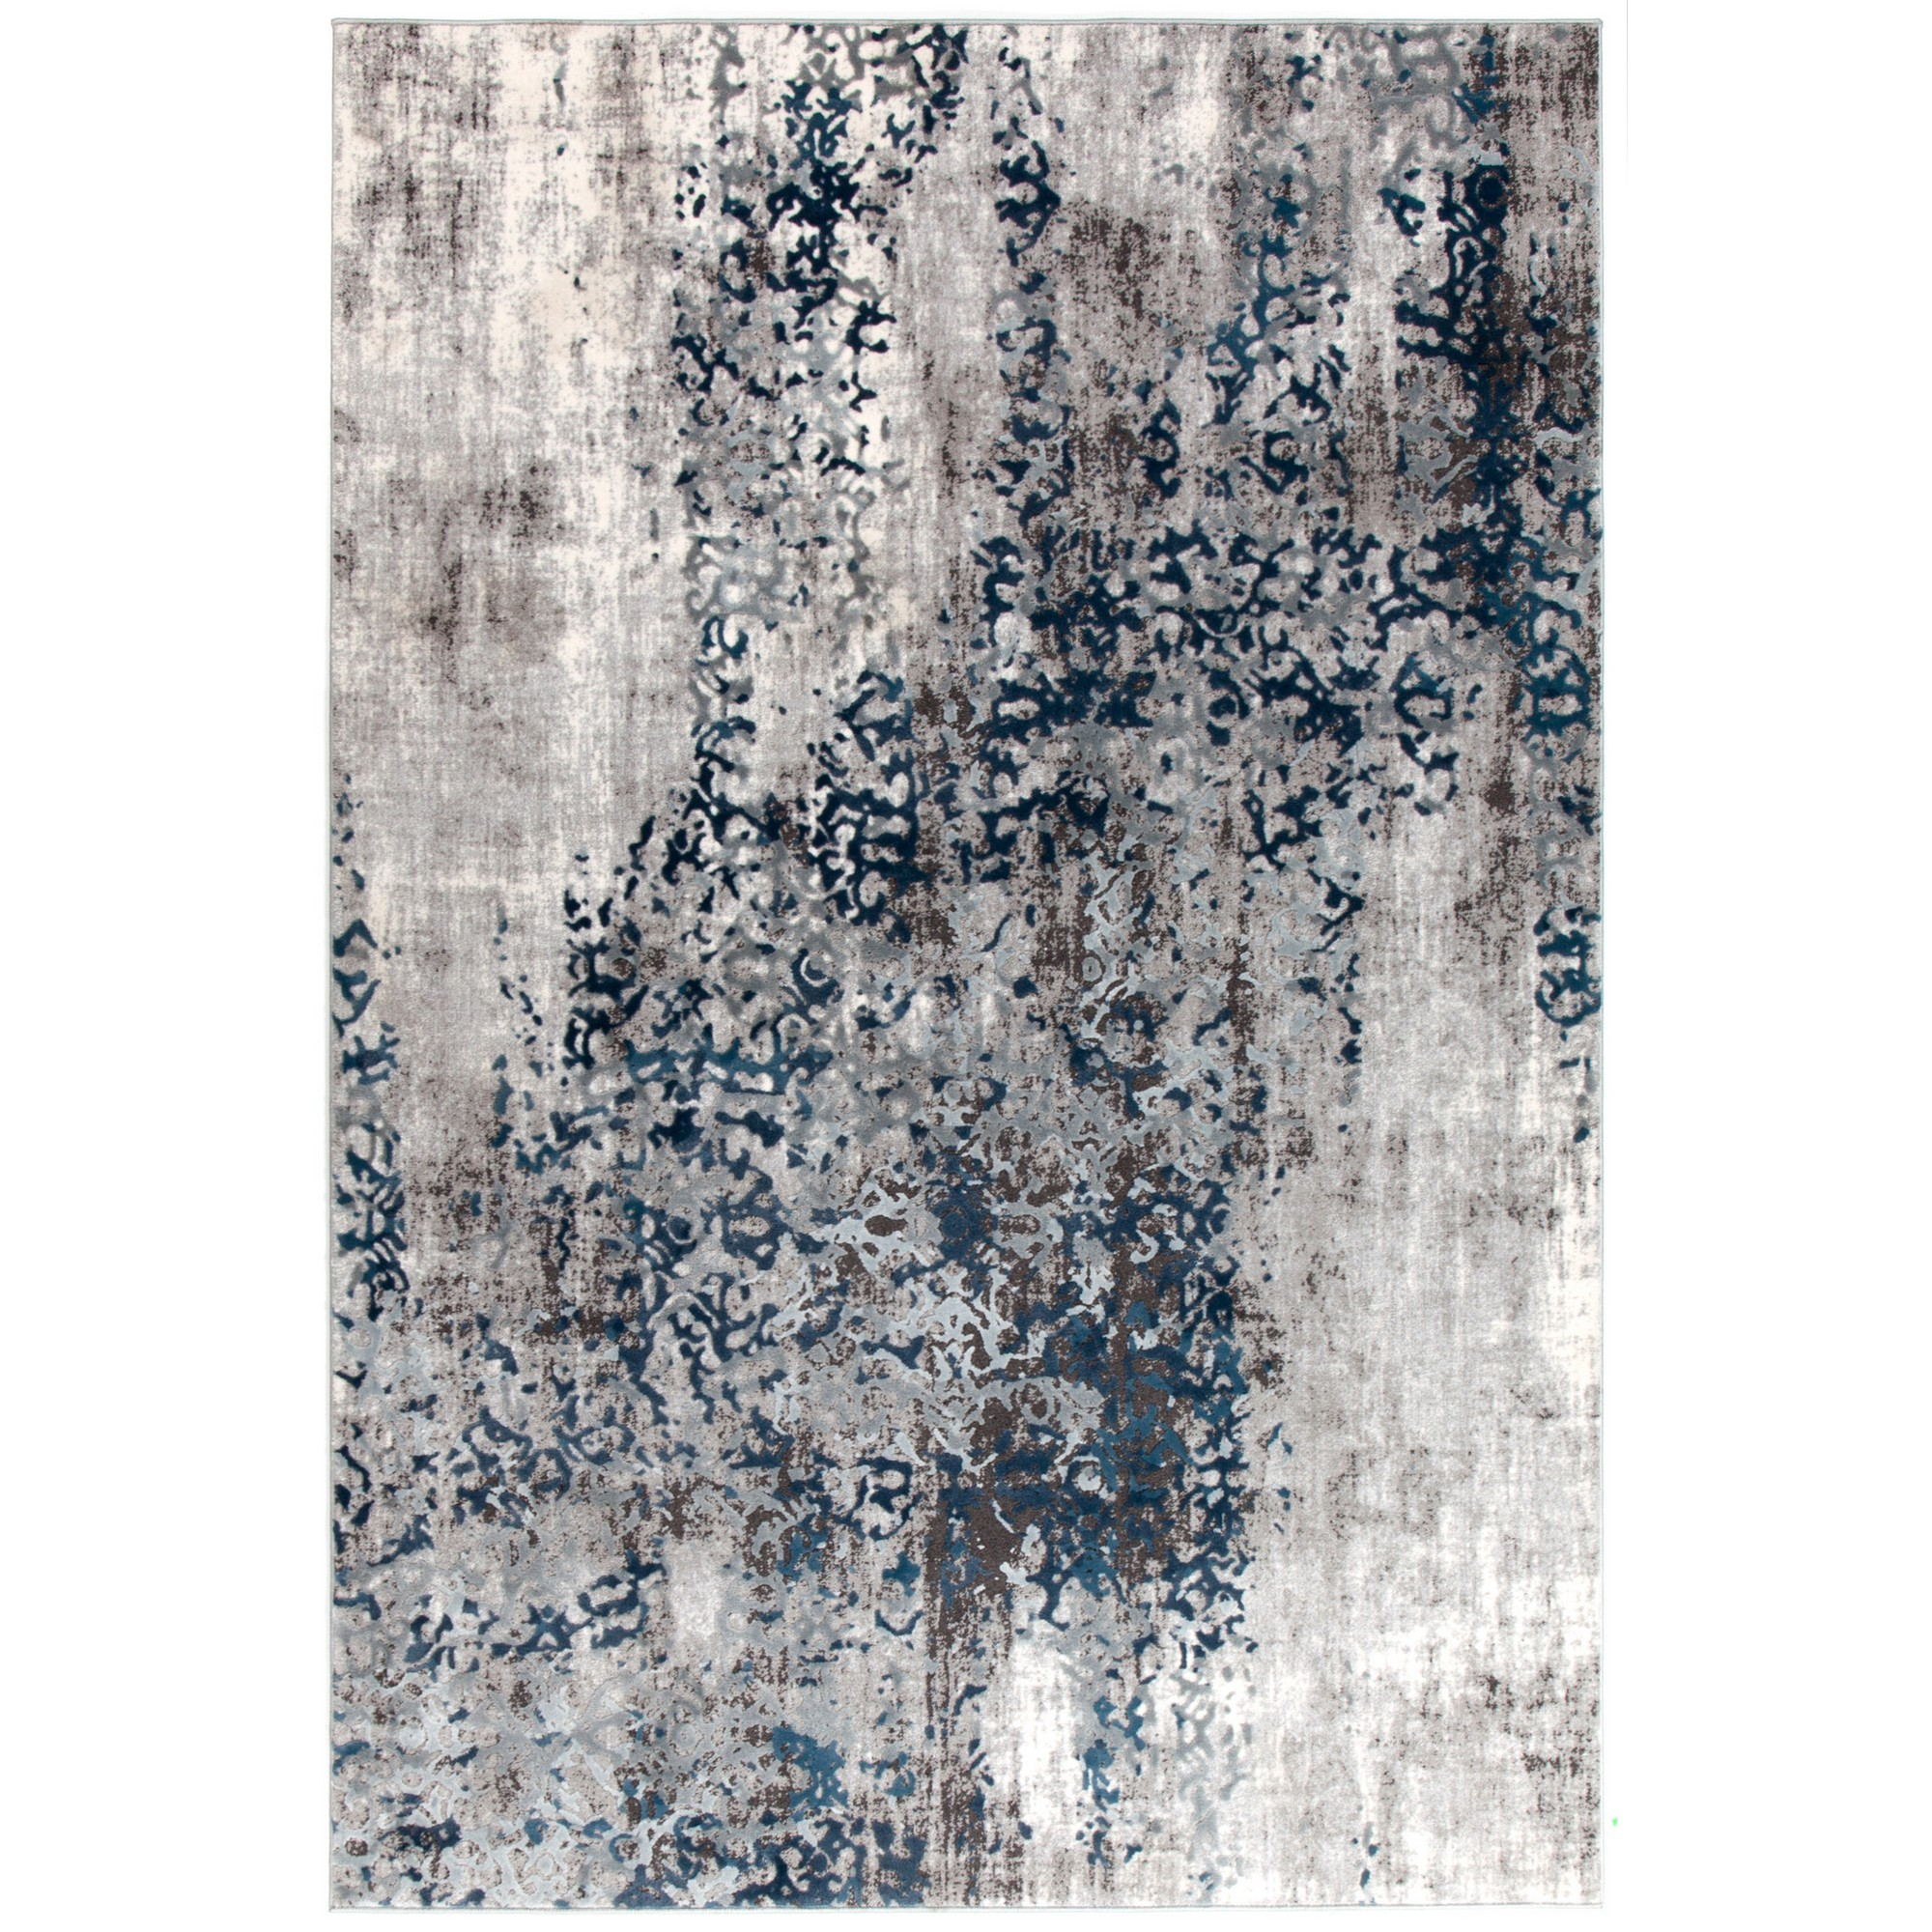 Kendra Annika Distressed Timeless Rug, 240x330cm